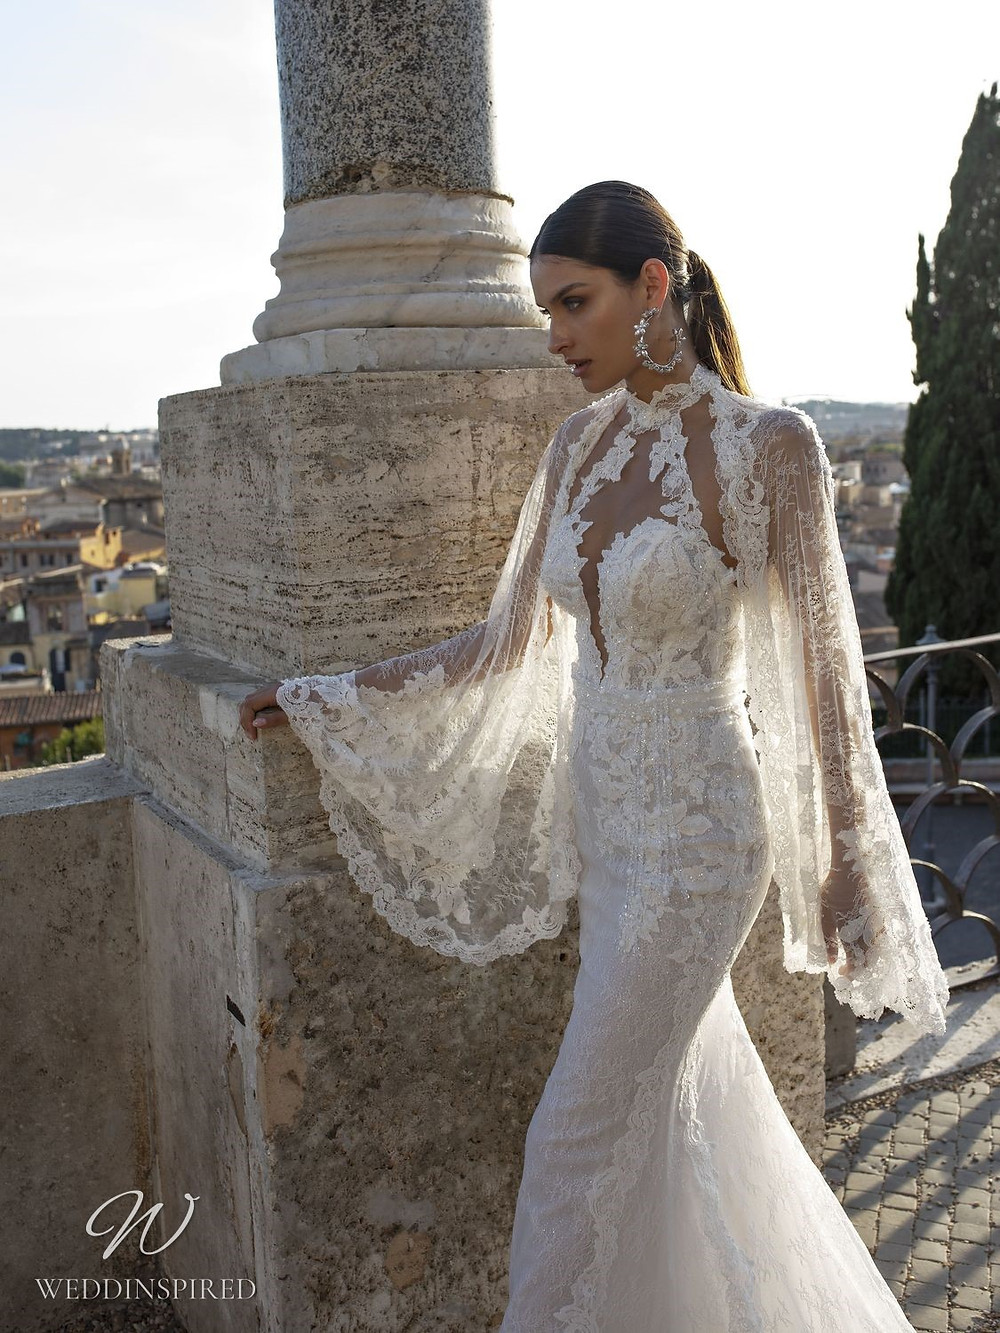 A Pinella Passaro lace mermaid wedding dress with long bell sleeves